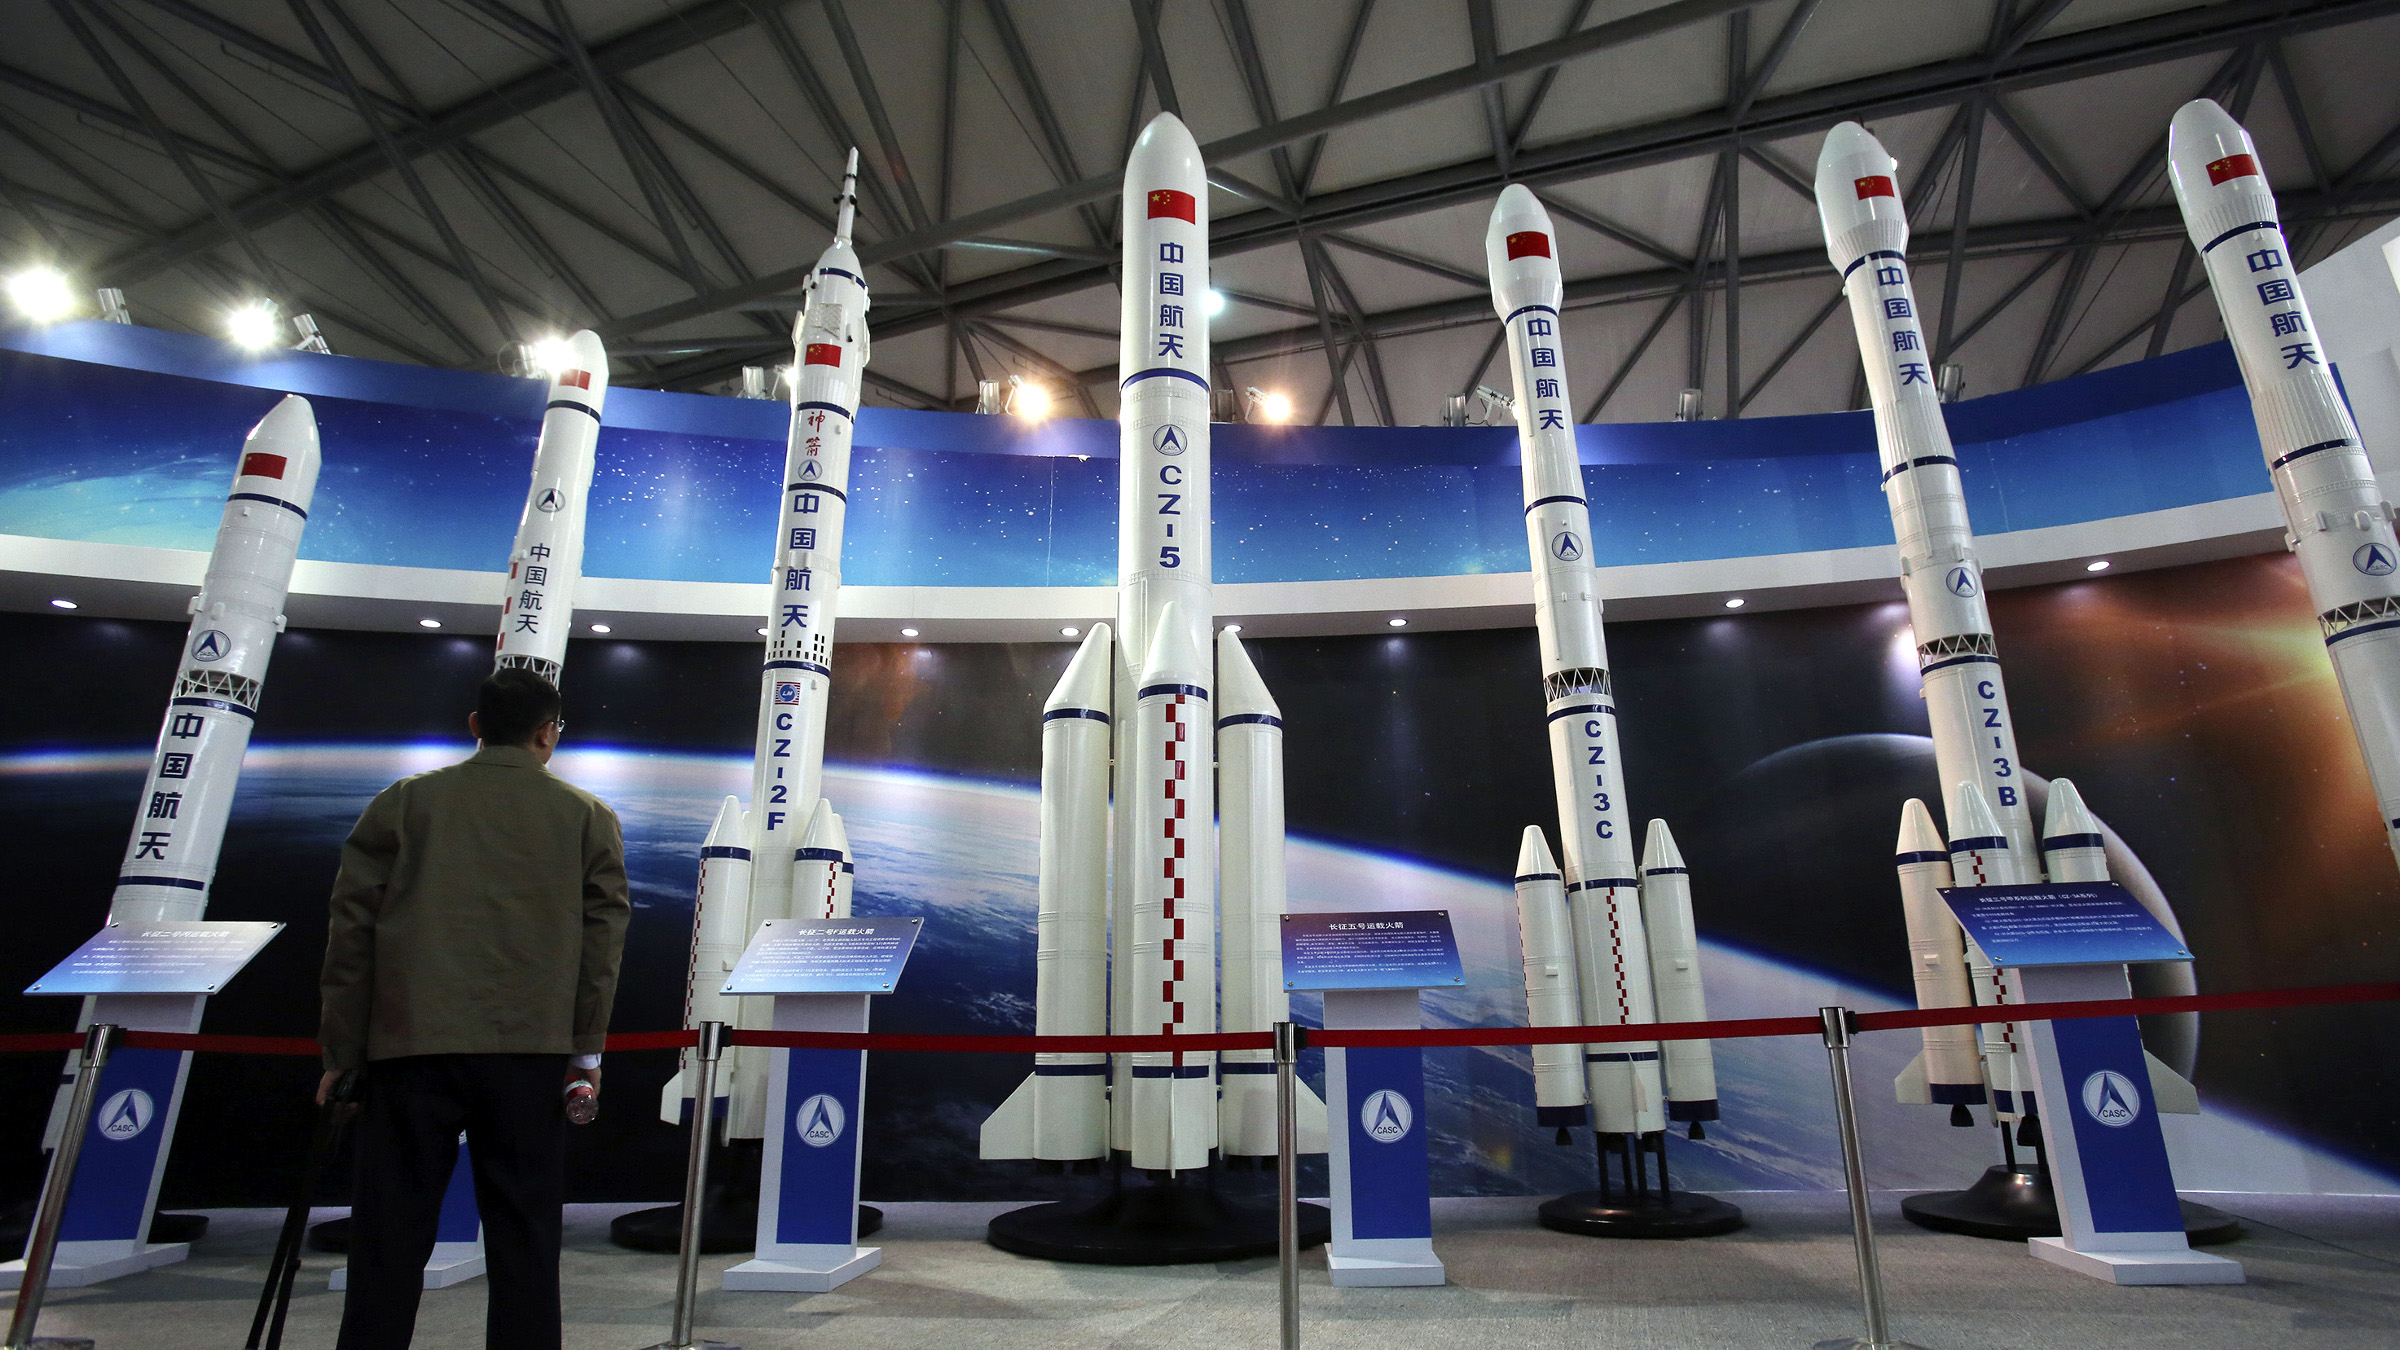 A visitor looks at the scale models of Chinese space rockets displayed at the China International Industry Fair in Shanghai, China, Tuesday, Nov. 5, 2013.